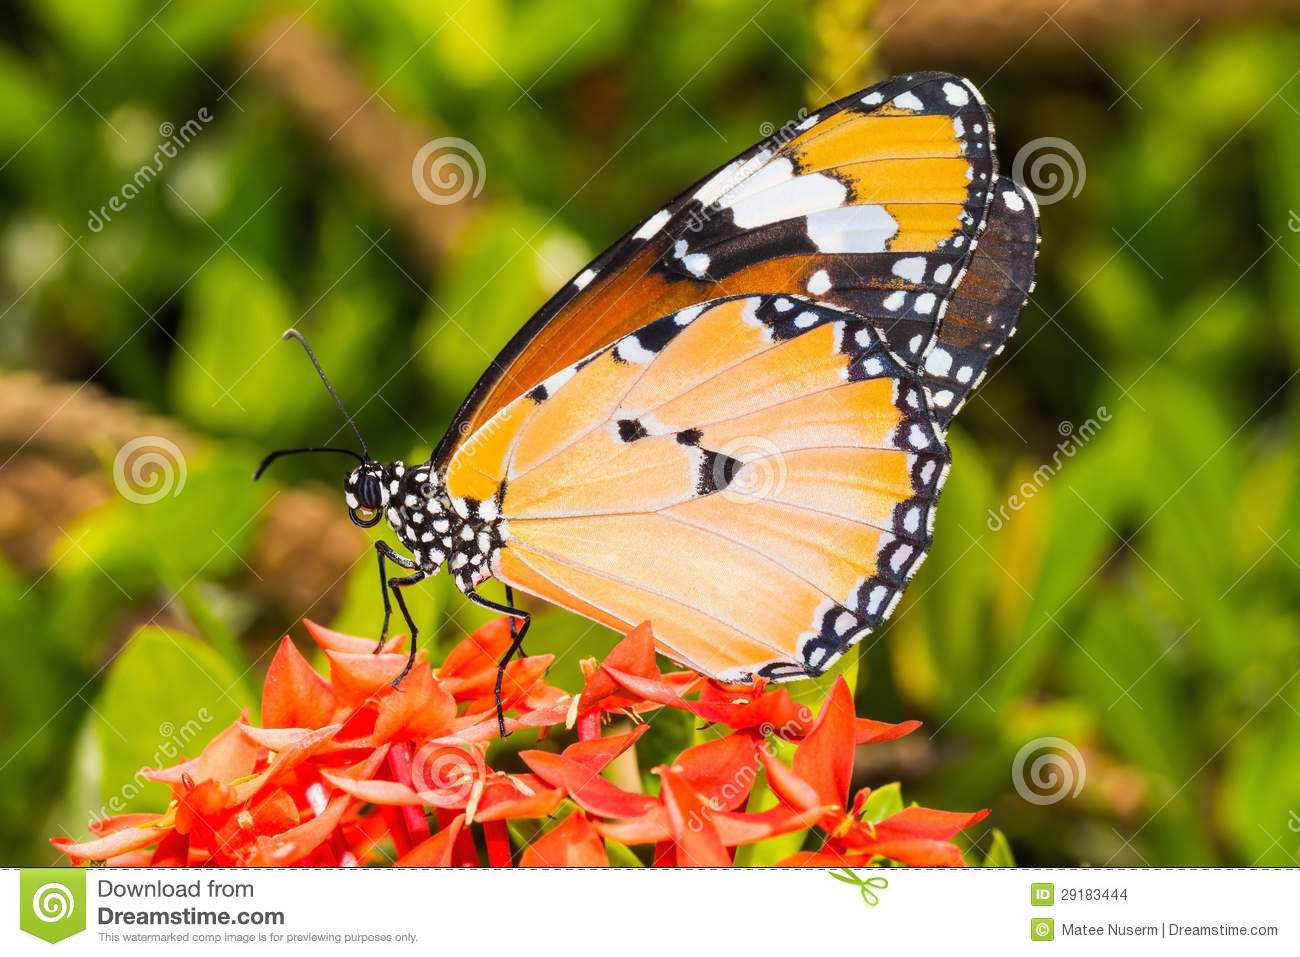 The concept of butterfly in the abdomen: what is it and what does it mean